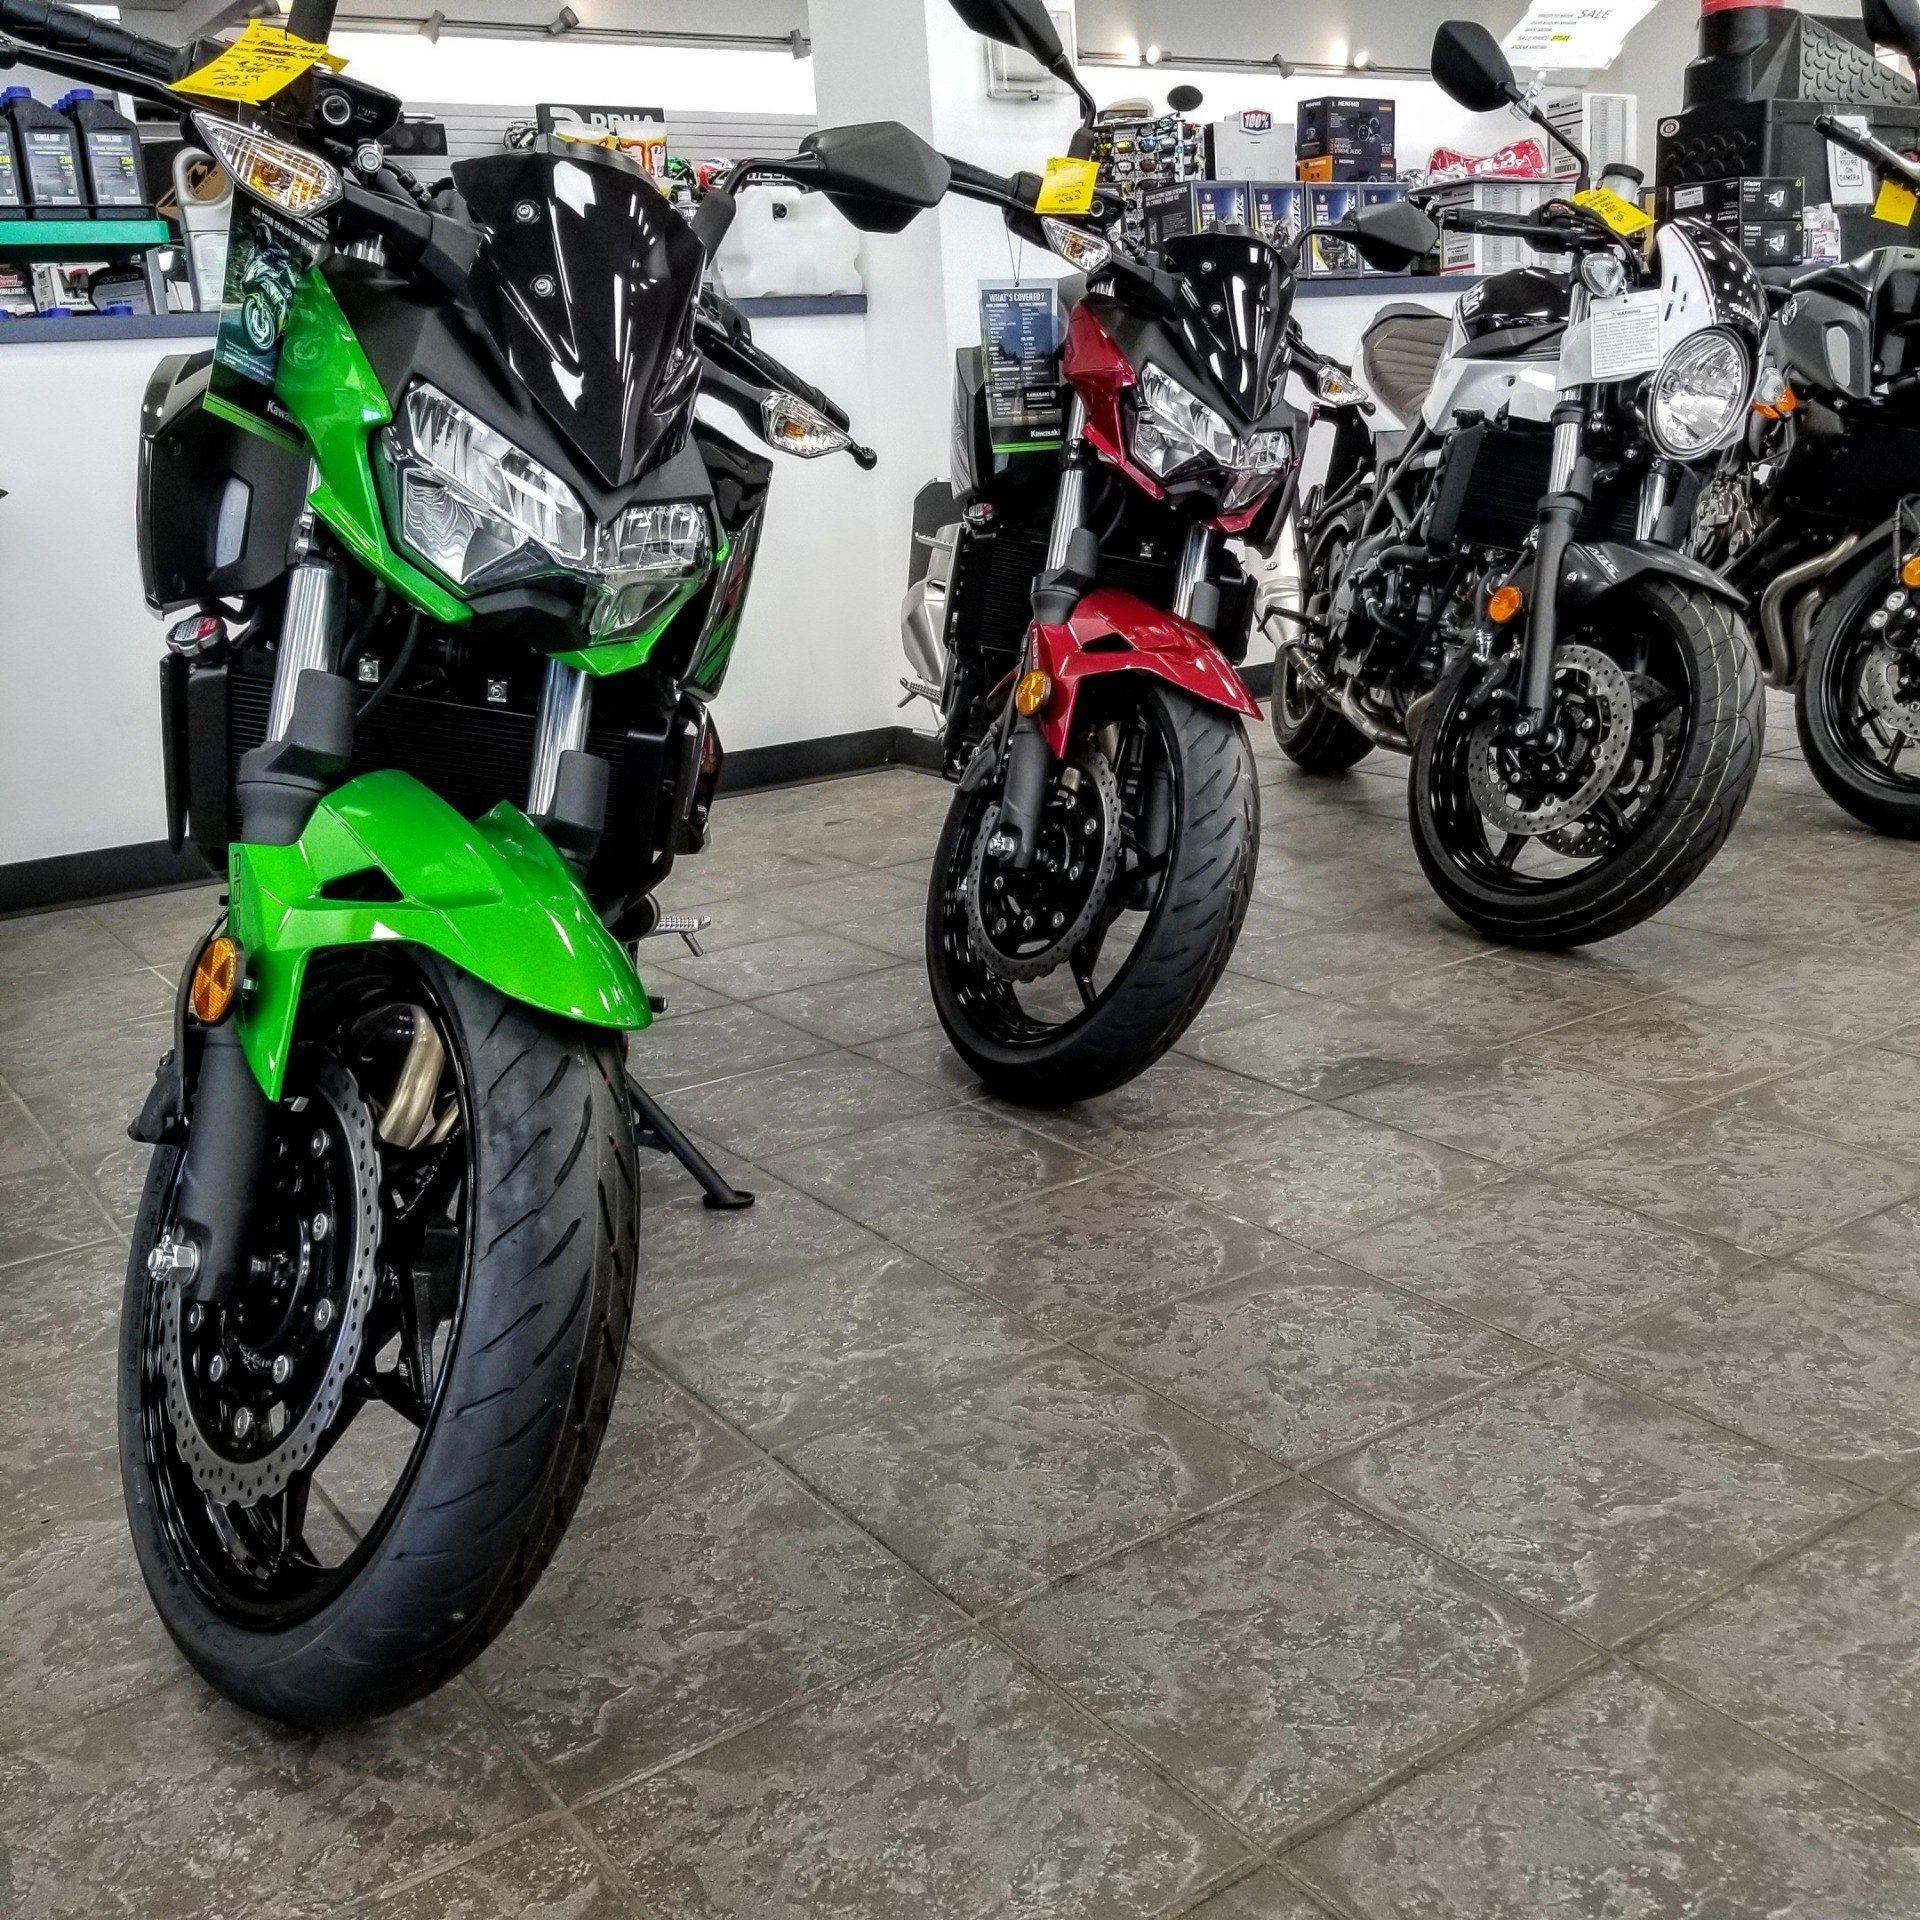 2019 Kawasaki Z400 ABS in Hickory, North Carolina - Photo 8